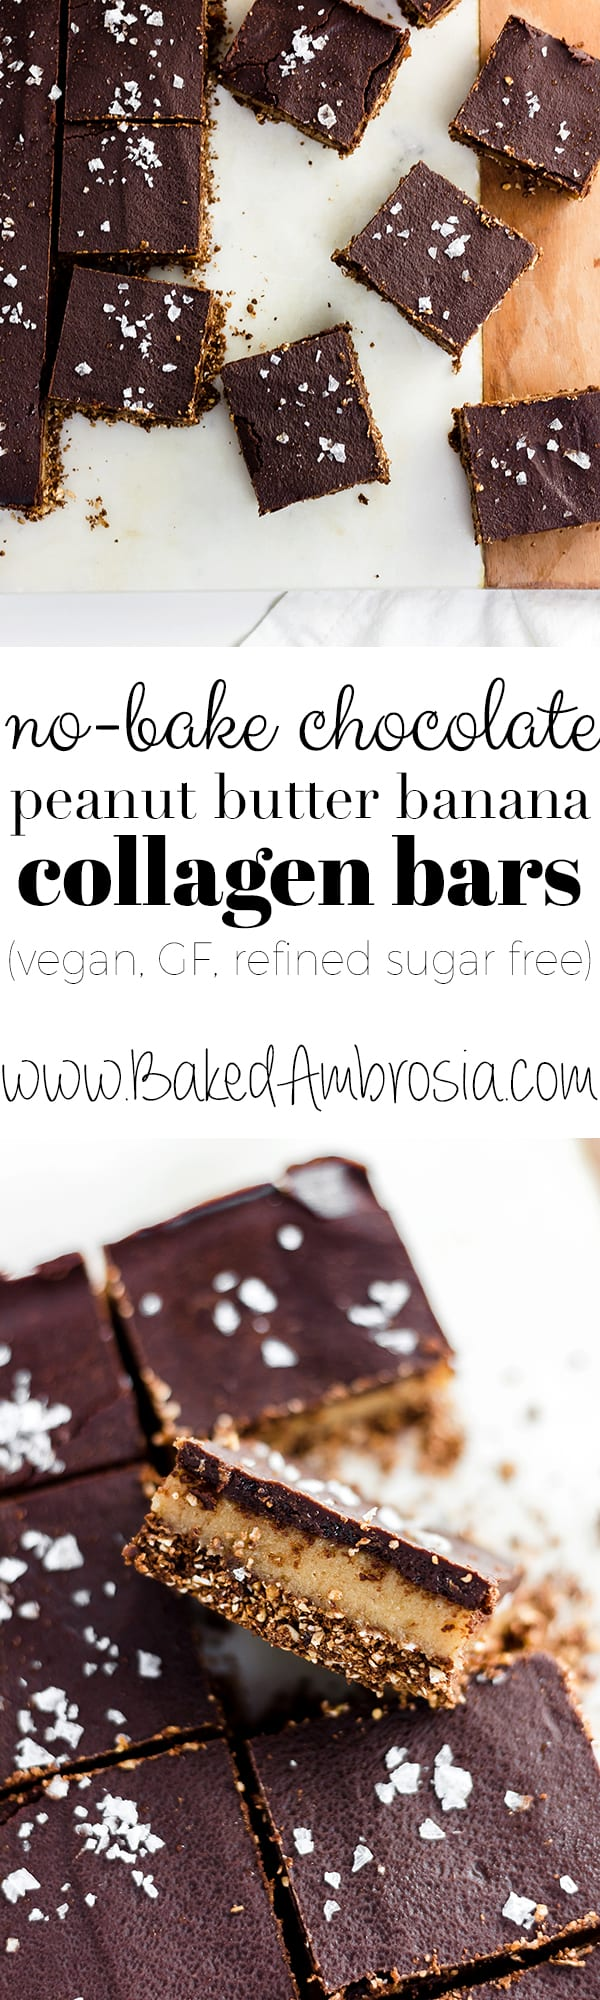 Easy,healthy, no-bake Chocolate Peanut Butterand Banana Collagen Bars are naturally sweetened, gooey and delicious. The perfect protein-packed snack on the go! (GF, vegan)